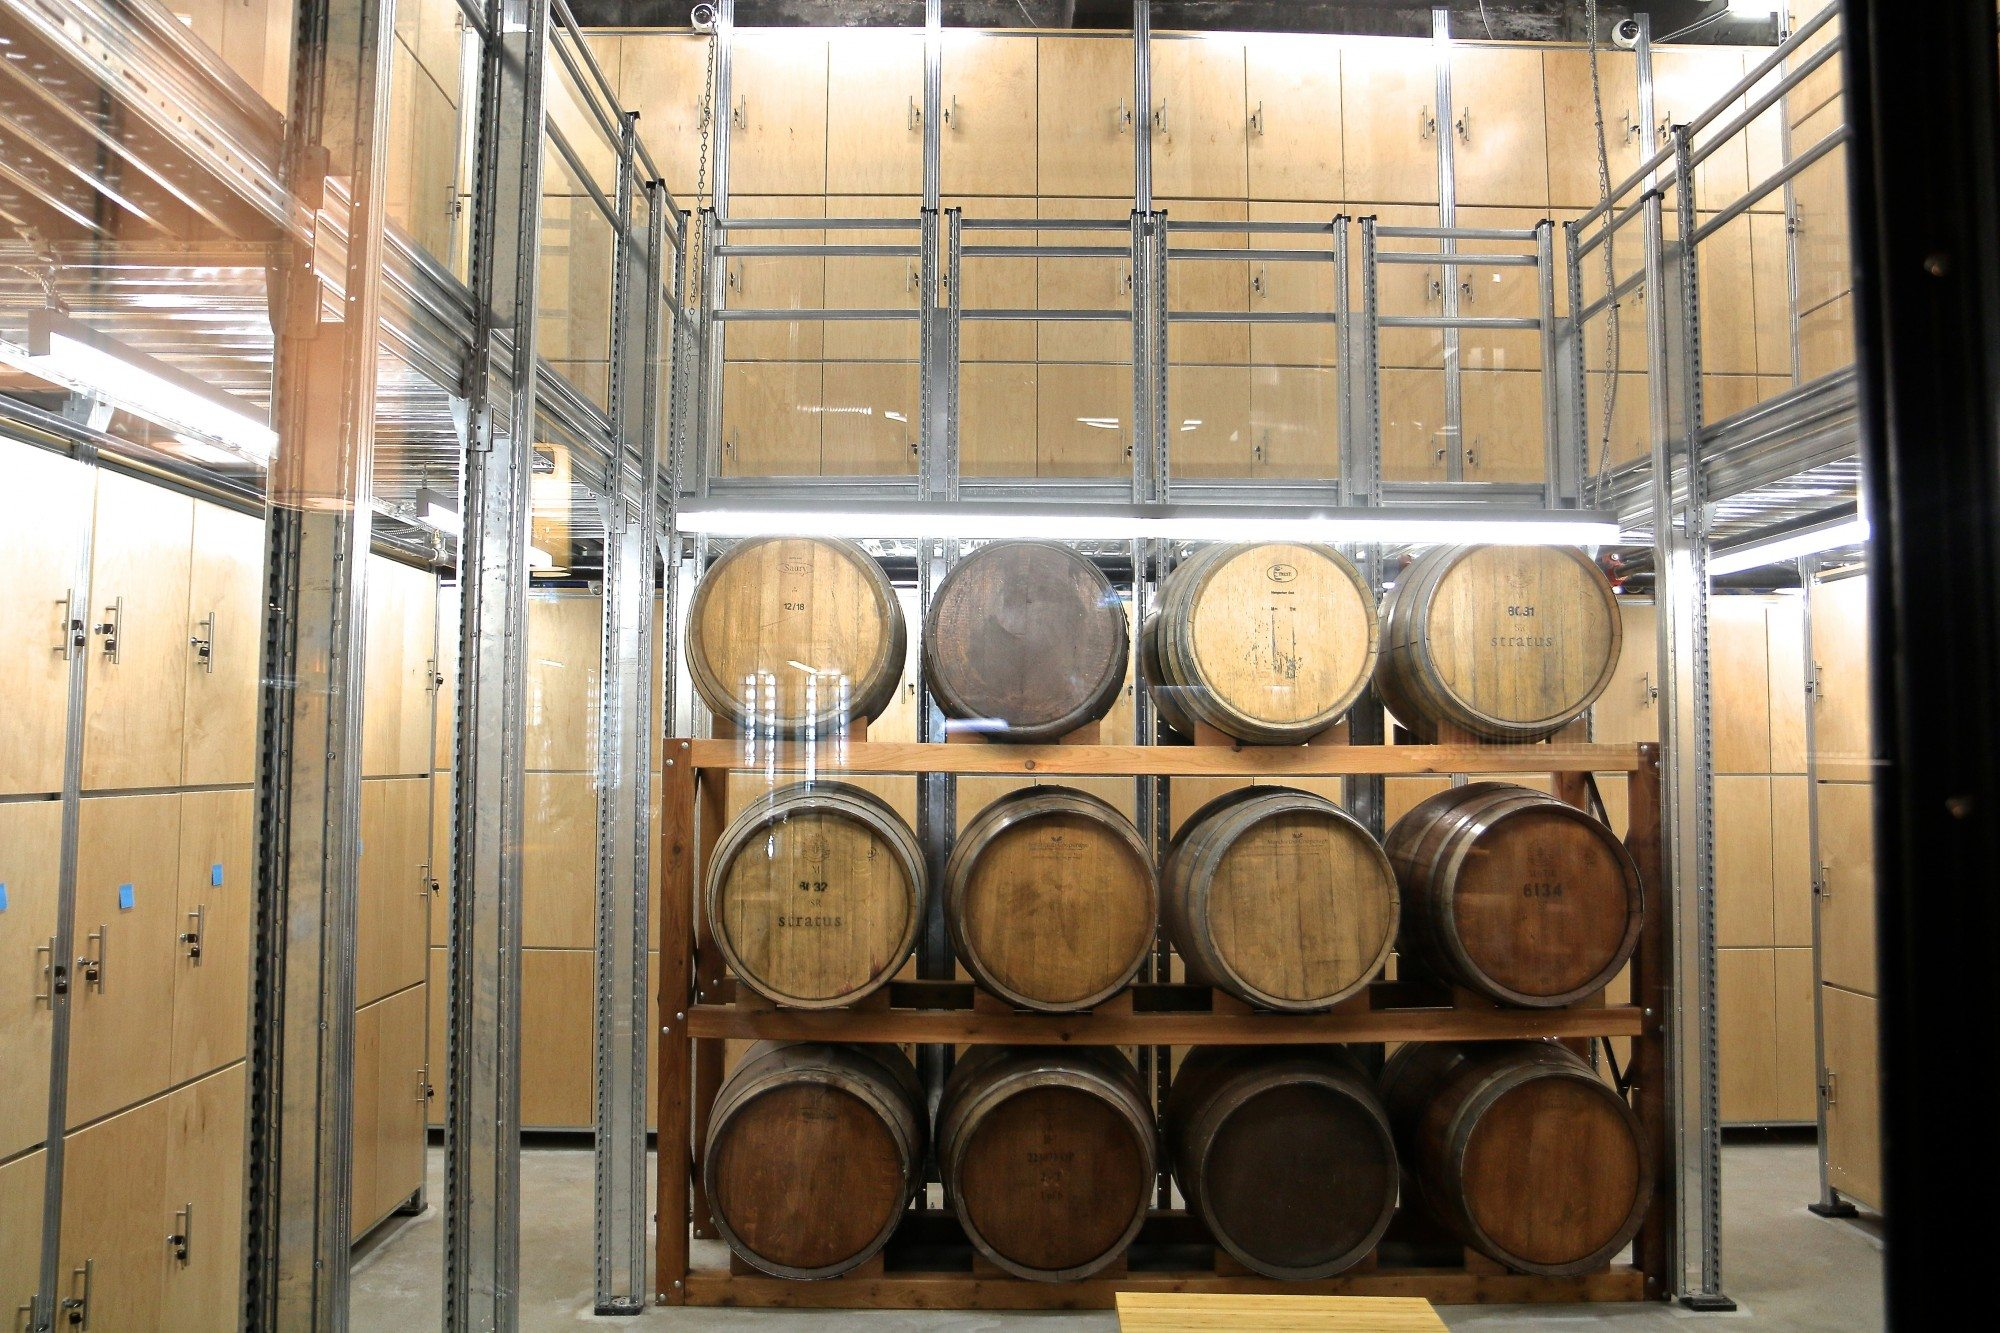 toronto-restaurants-clubs-the-private-wine-academy-financial-district-barrels